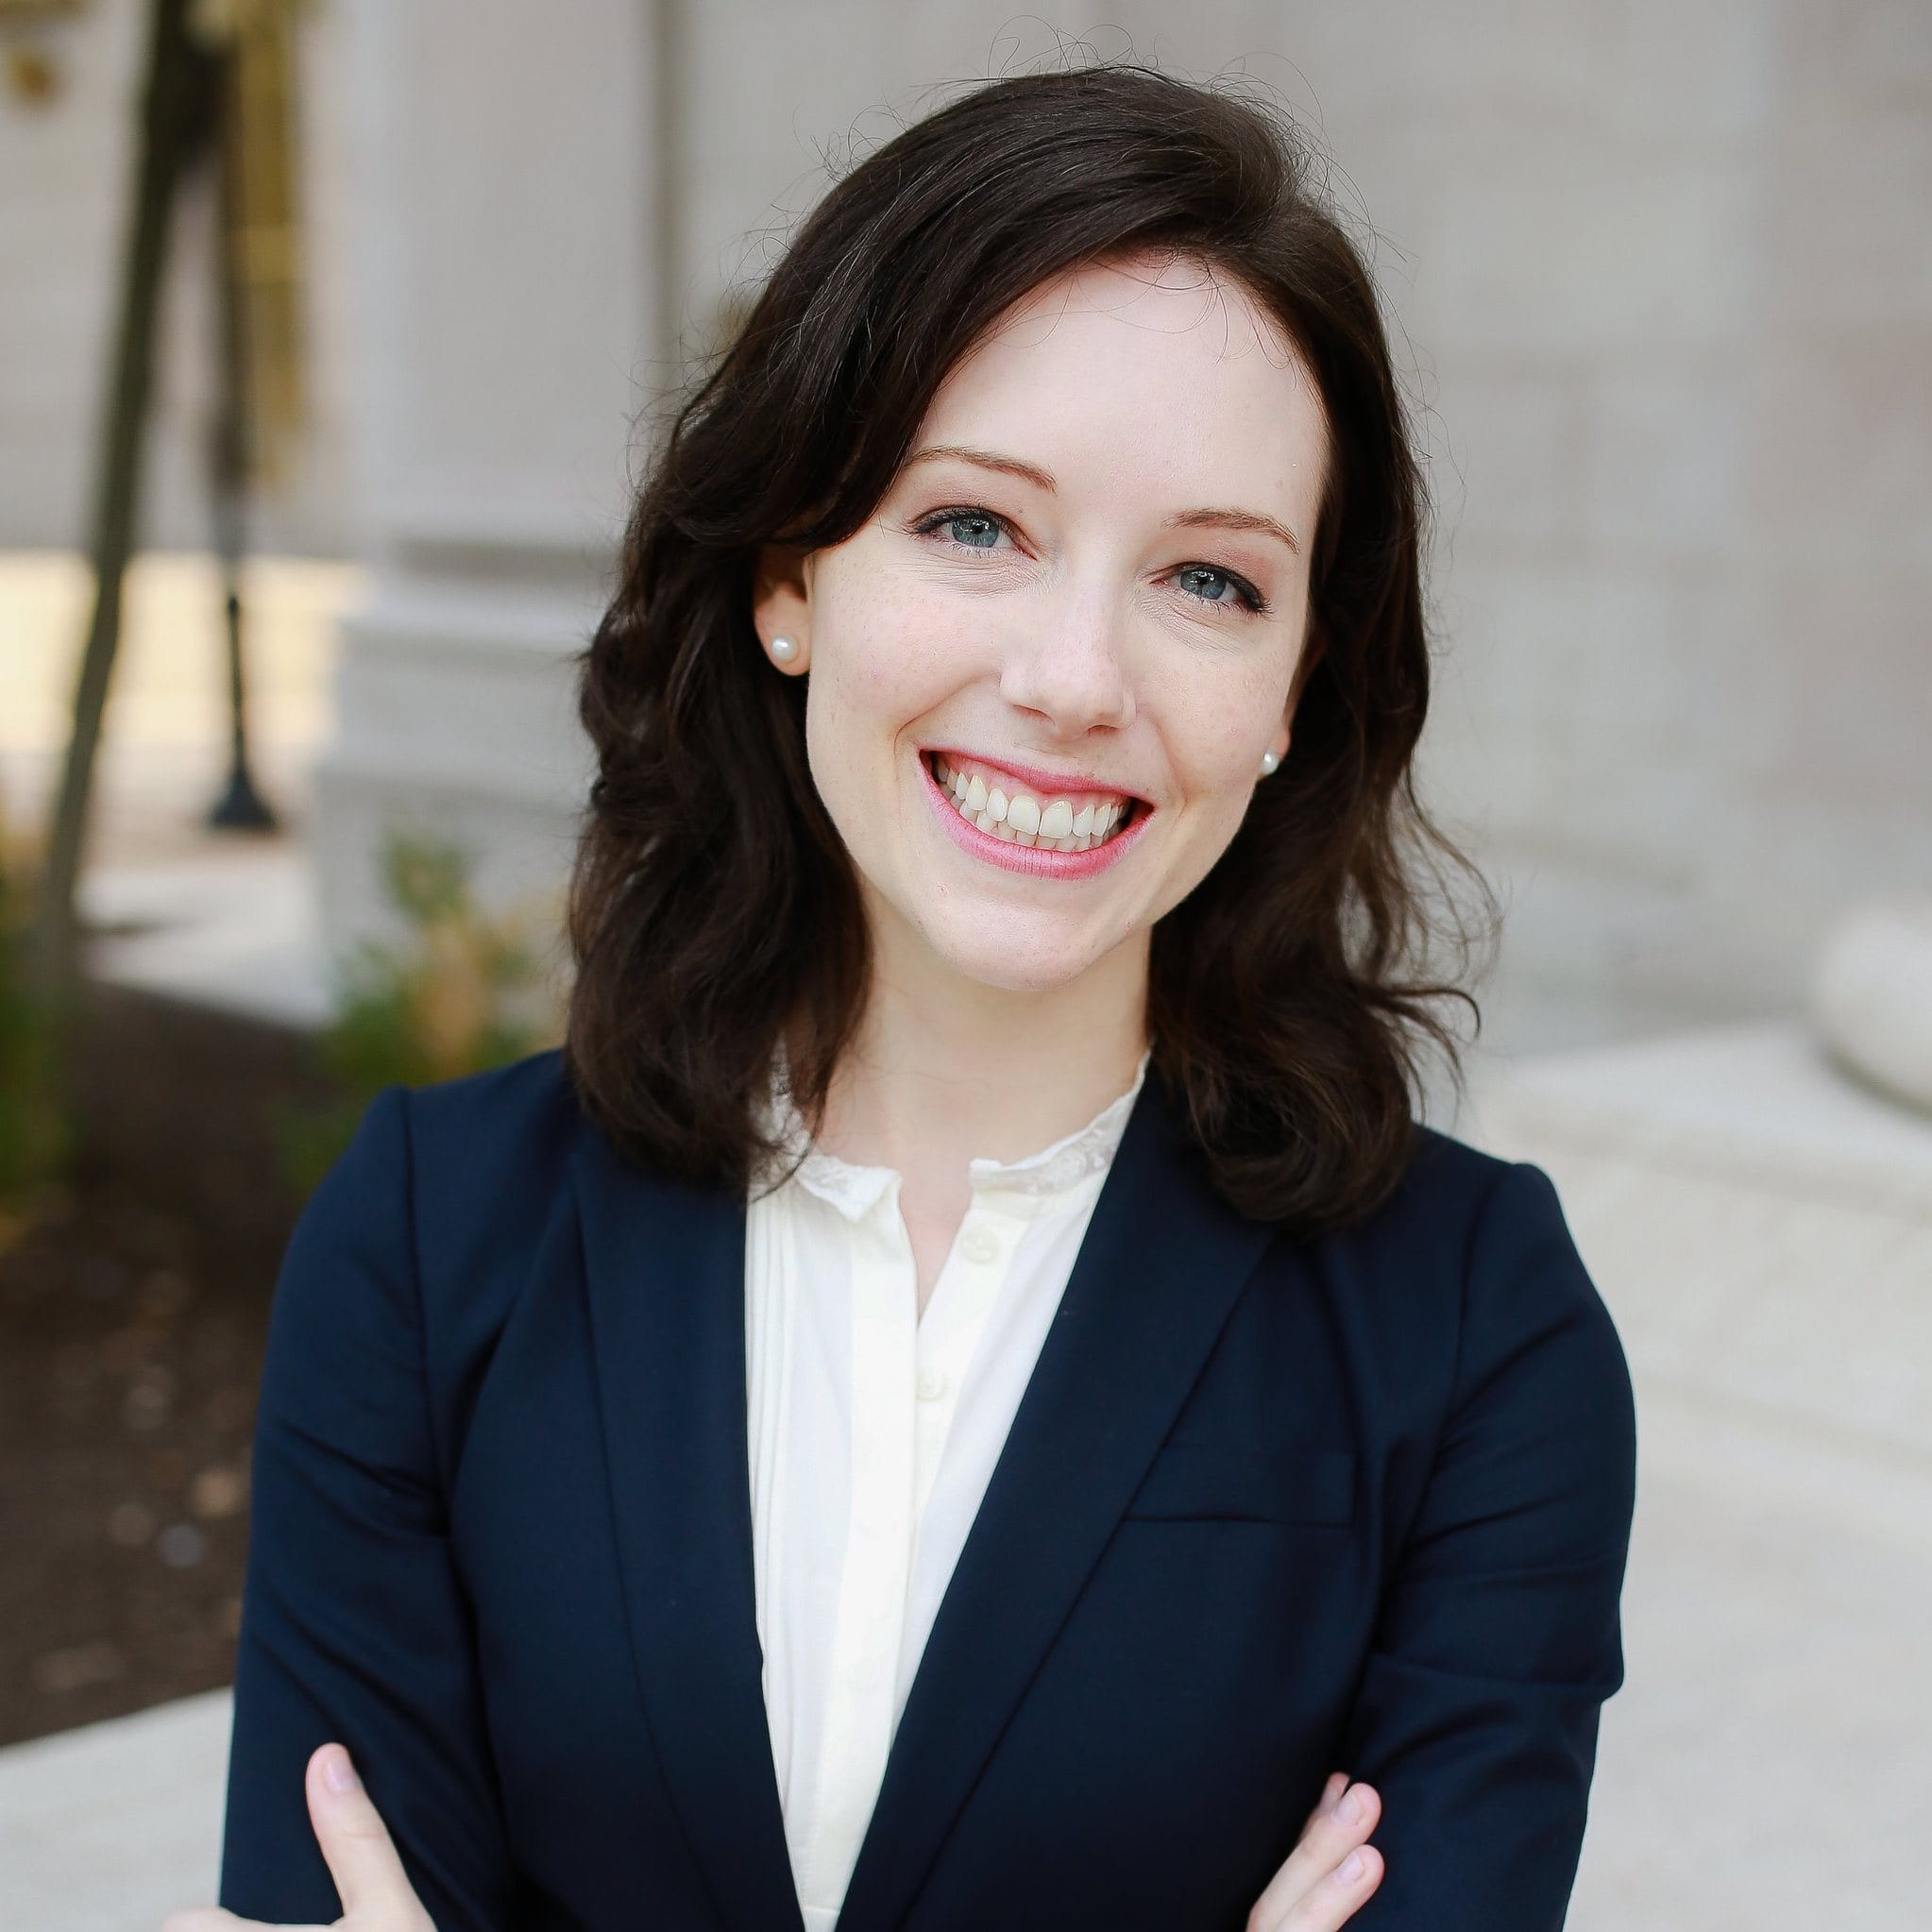 Meaghan M. Miles professional attorney profile picture. Practicing in affordable housing, real estate, and land use law.